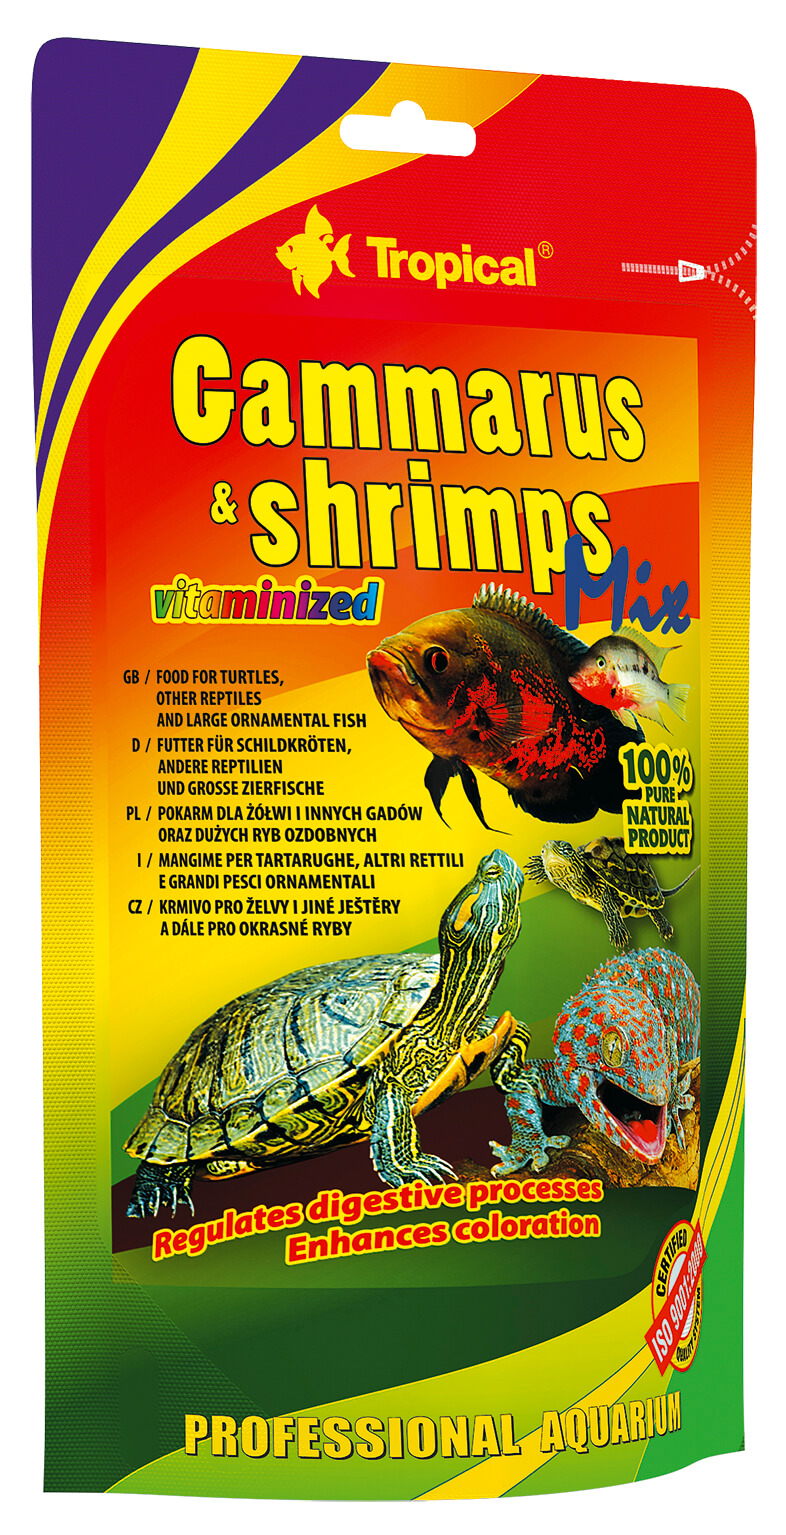 Tropical Gammarus&Shrimps Mix - 130g Pack